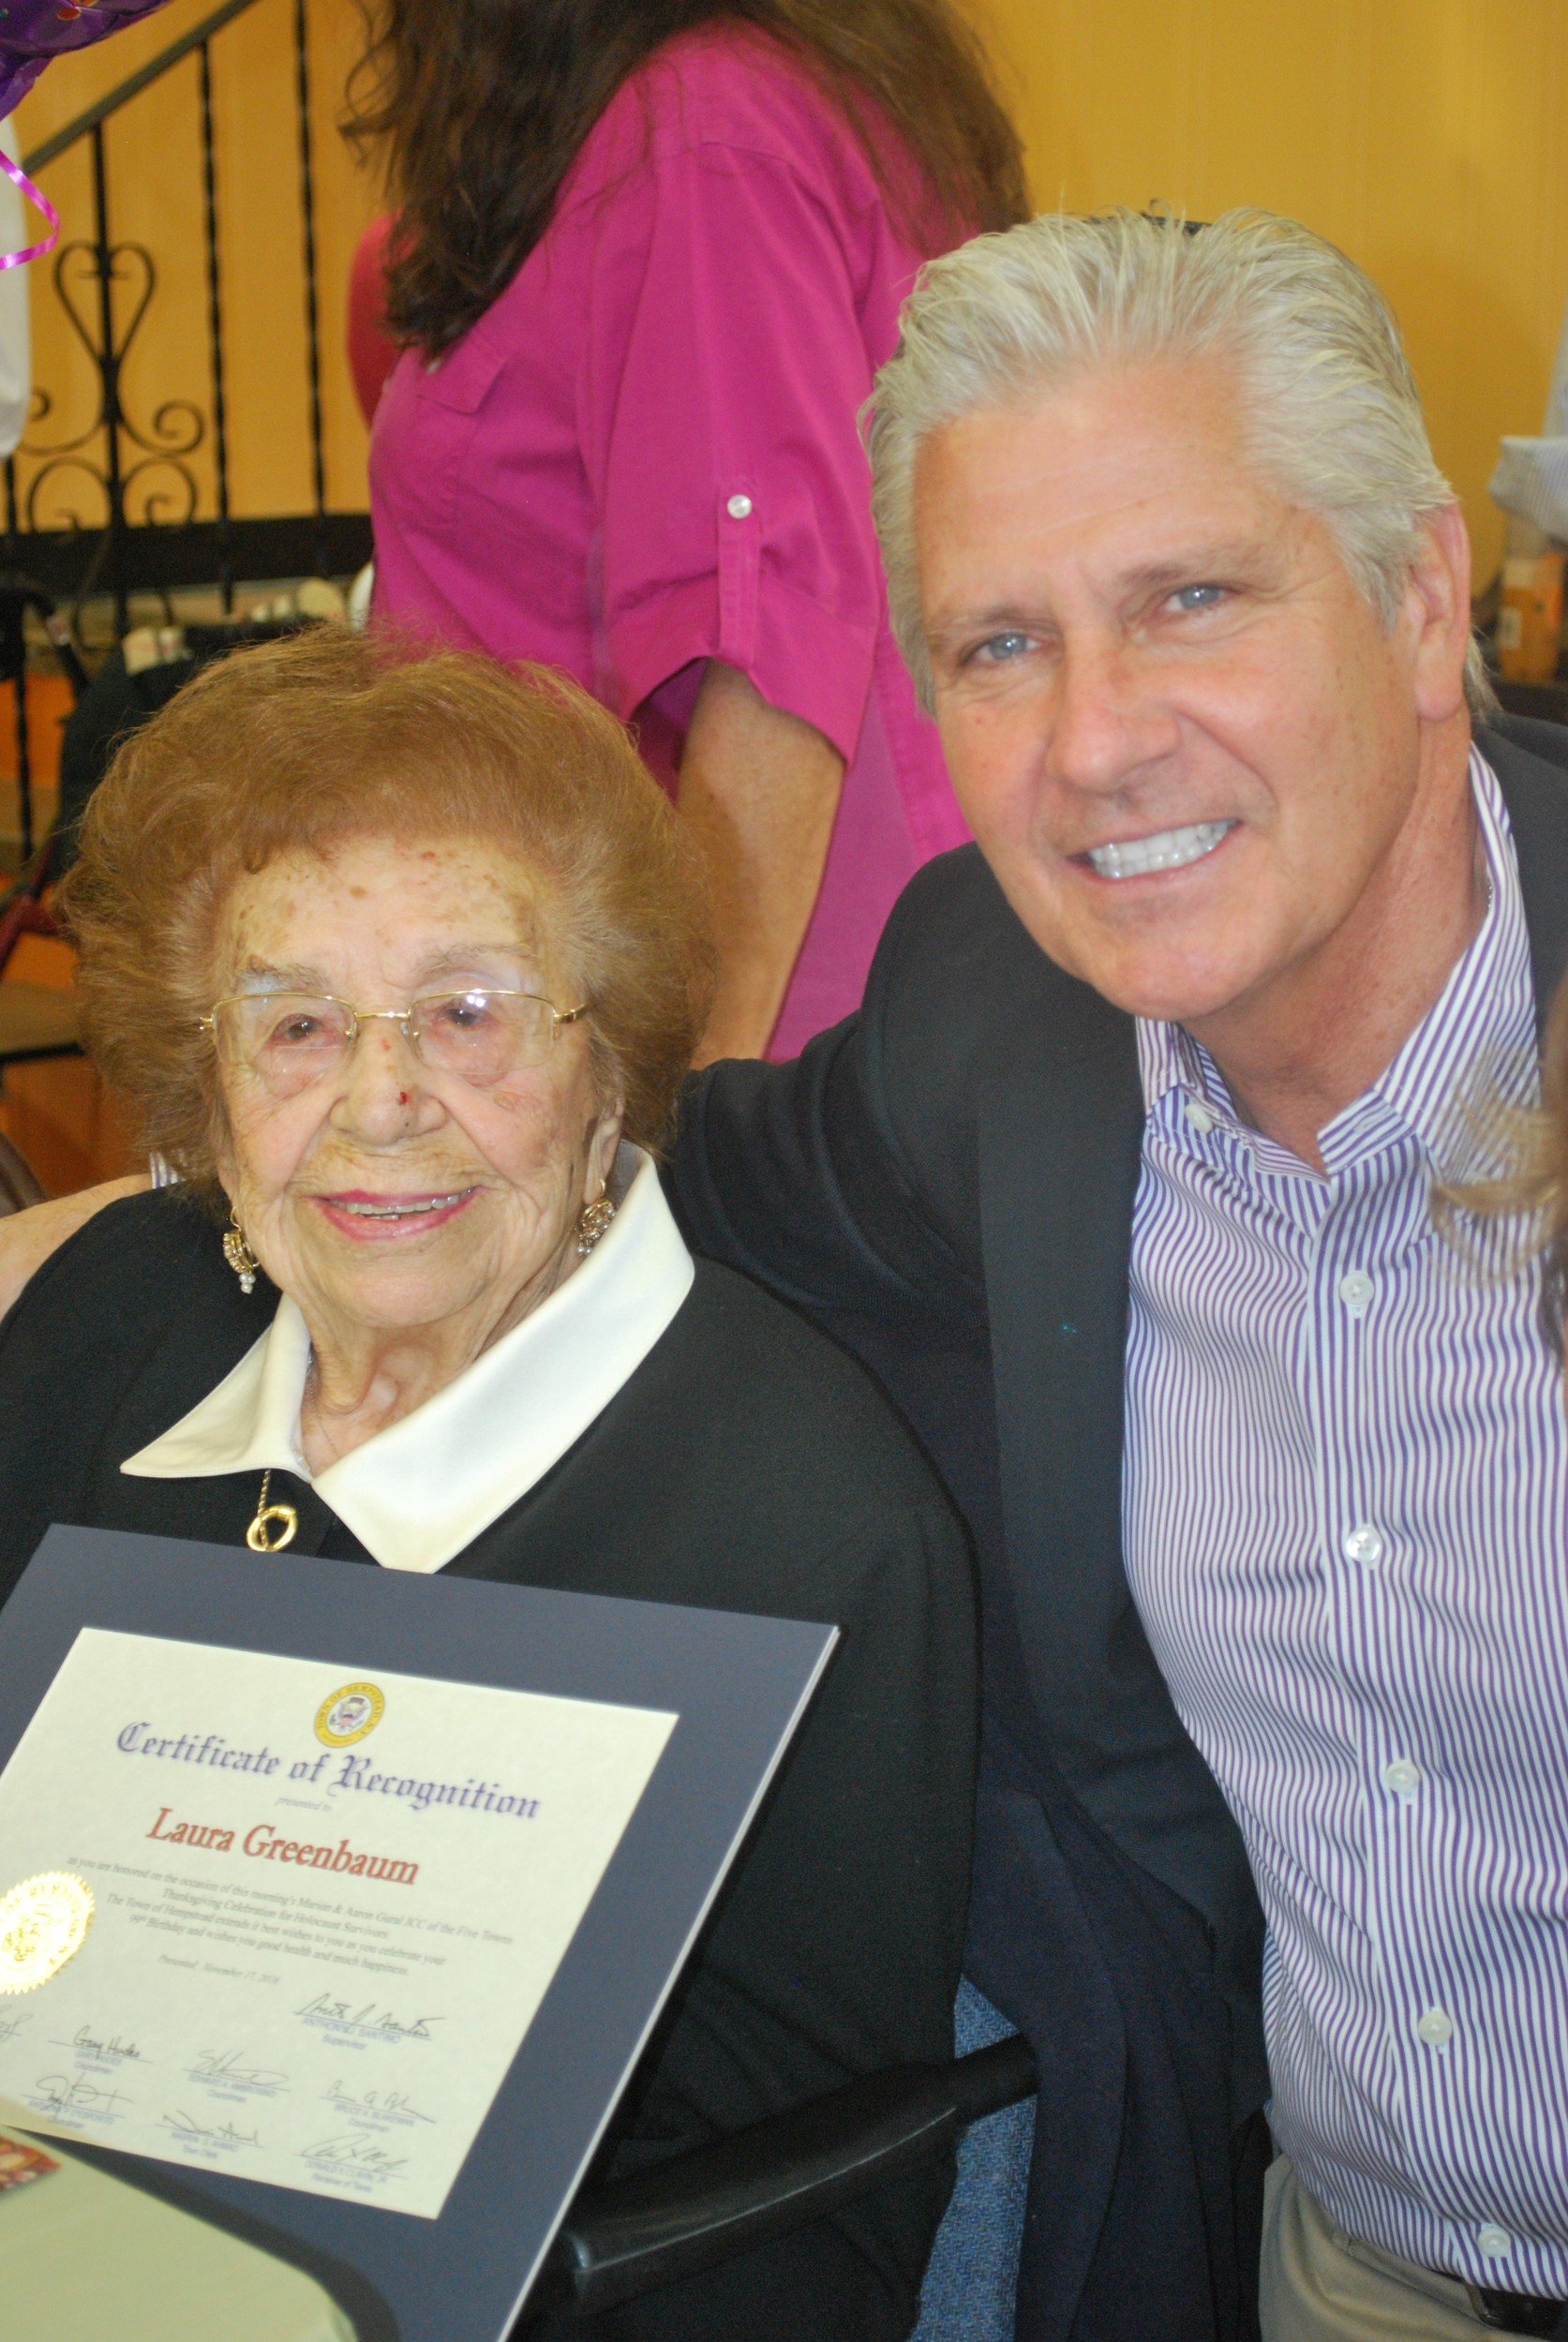 Laura Greenbaum, 99, was honored by Hempstead Town Councilman Bruce Blakeman at the JCC's Thanksgiving Day luncheon.